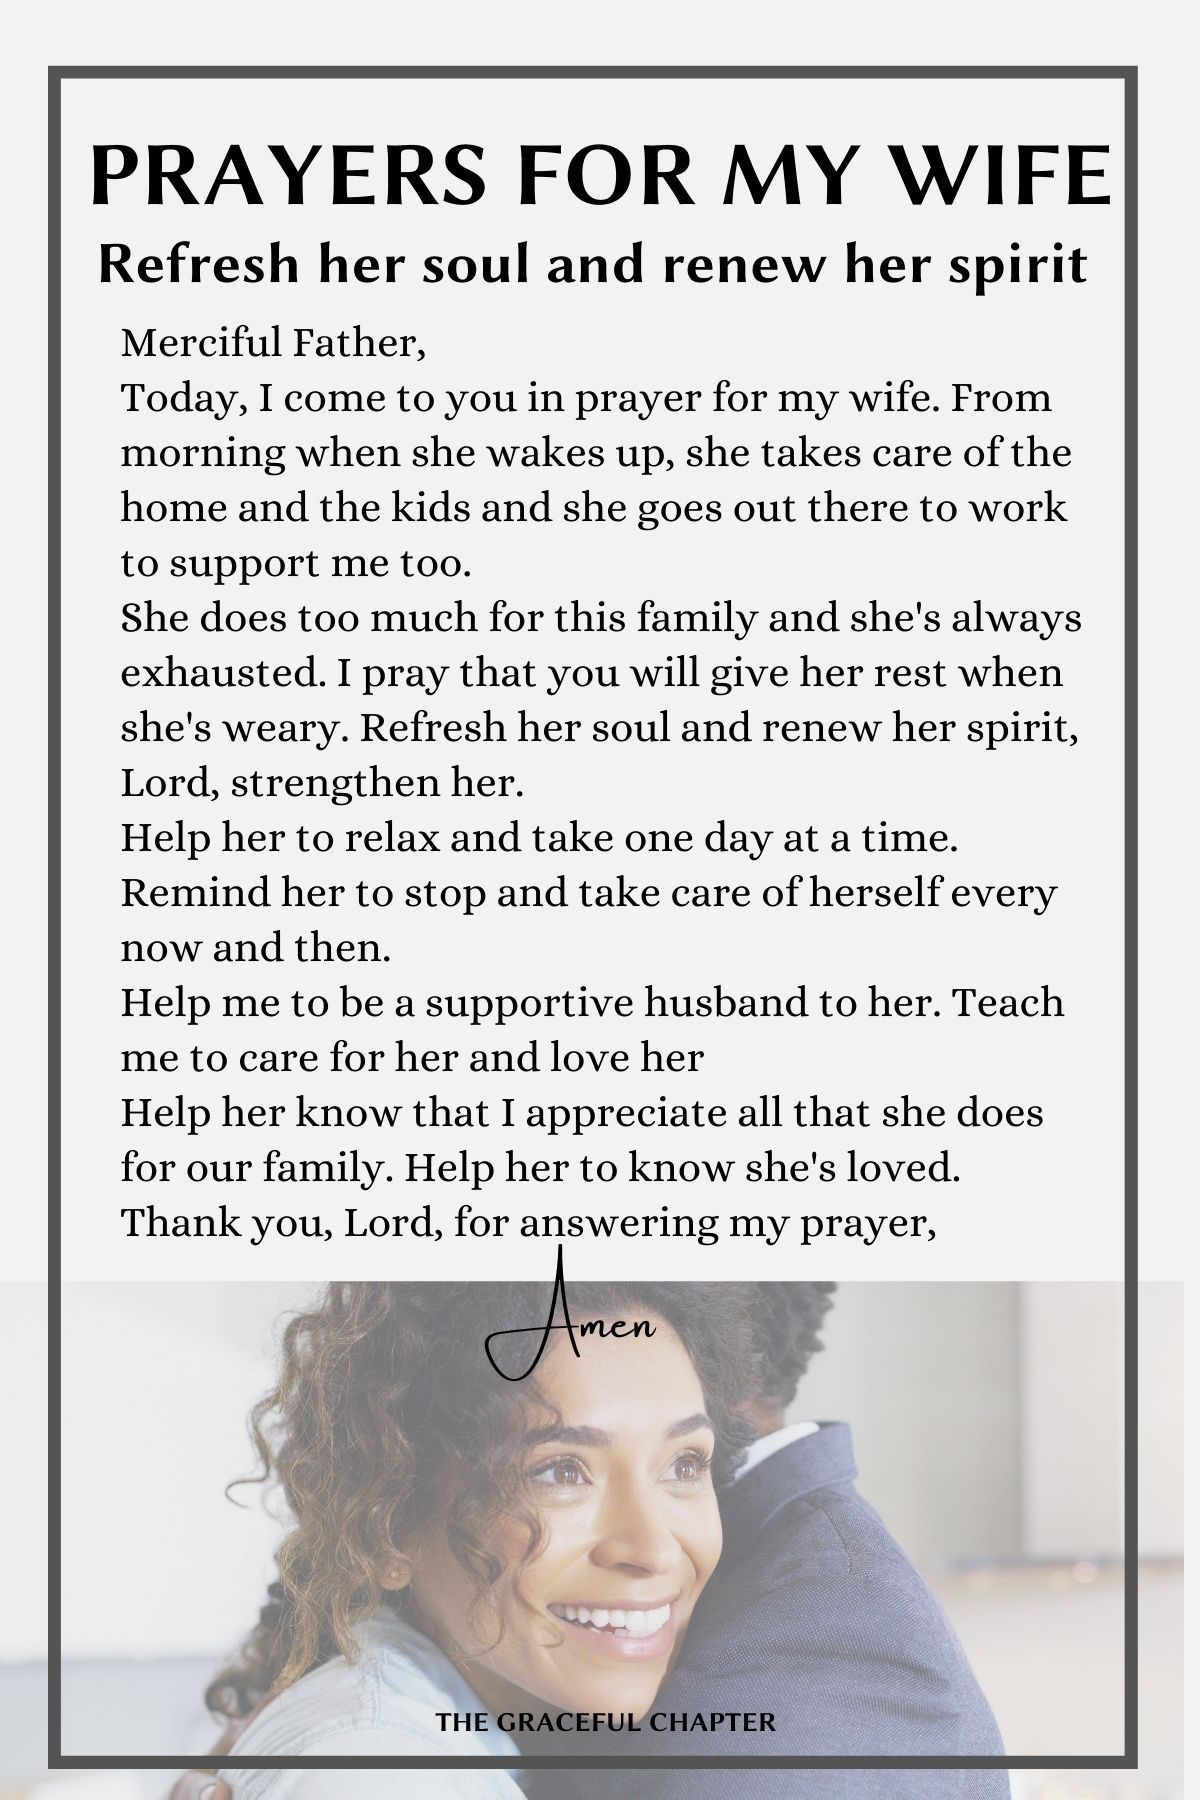 Prayers for your wife - Refresh her soul and renew her spirit